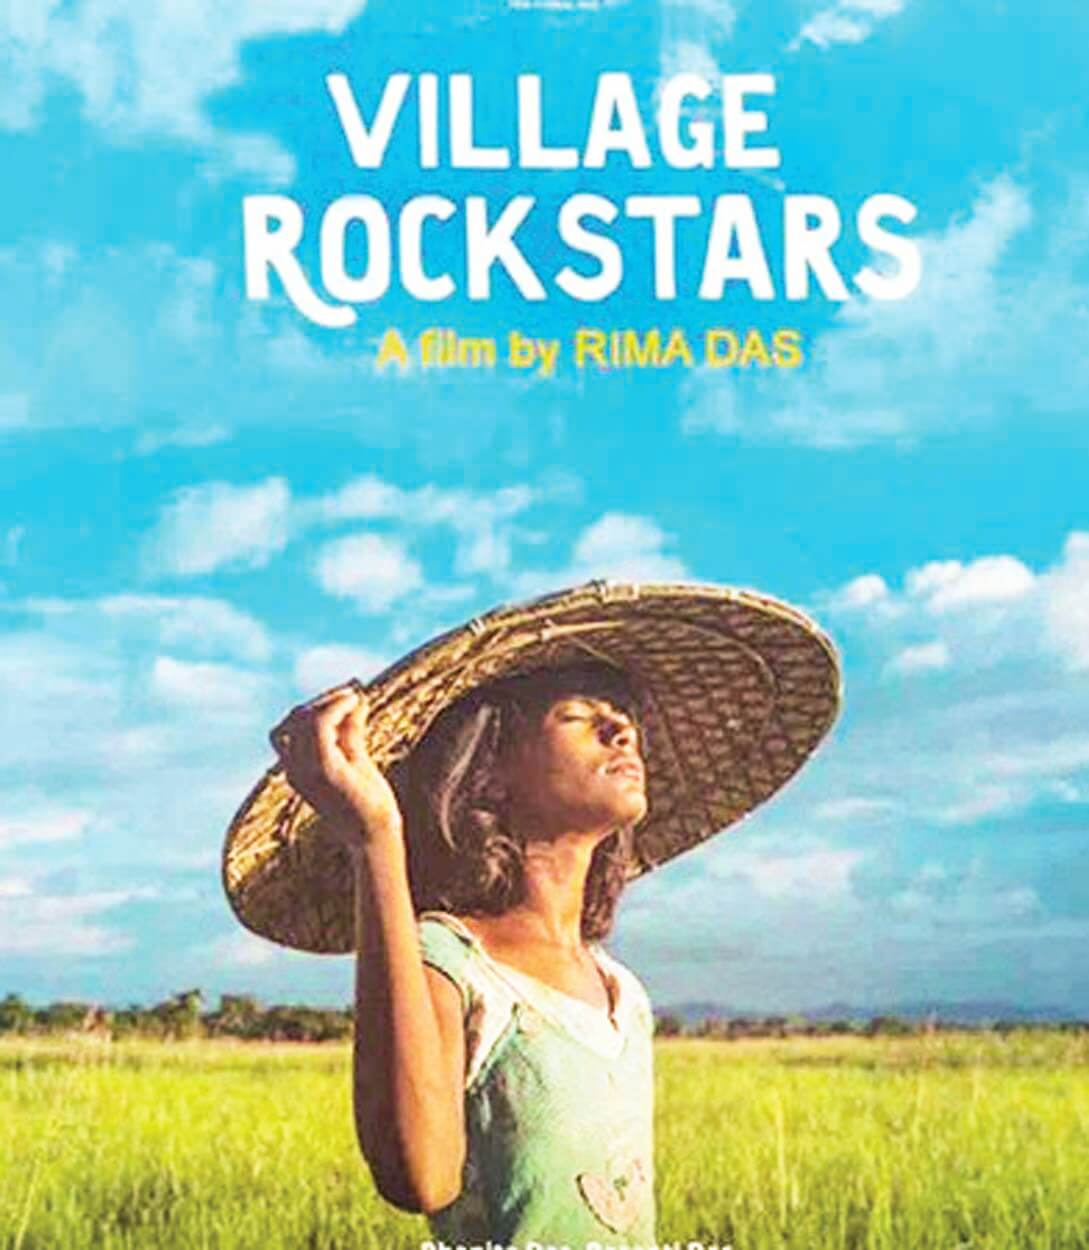 Oscar nominated Village  Rockstars premiere today